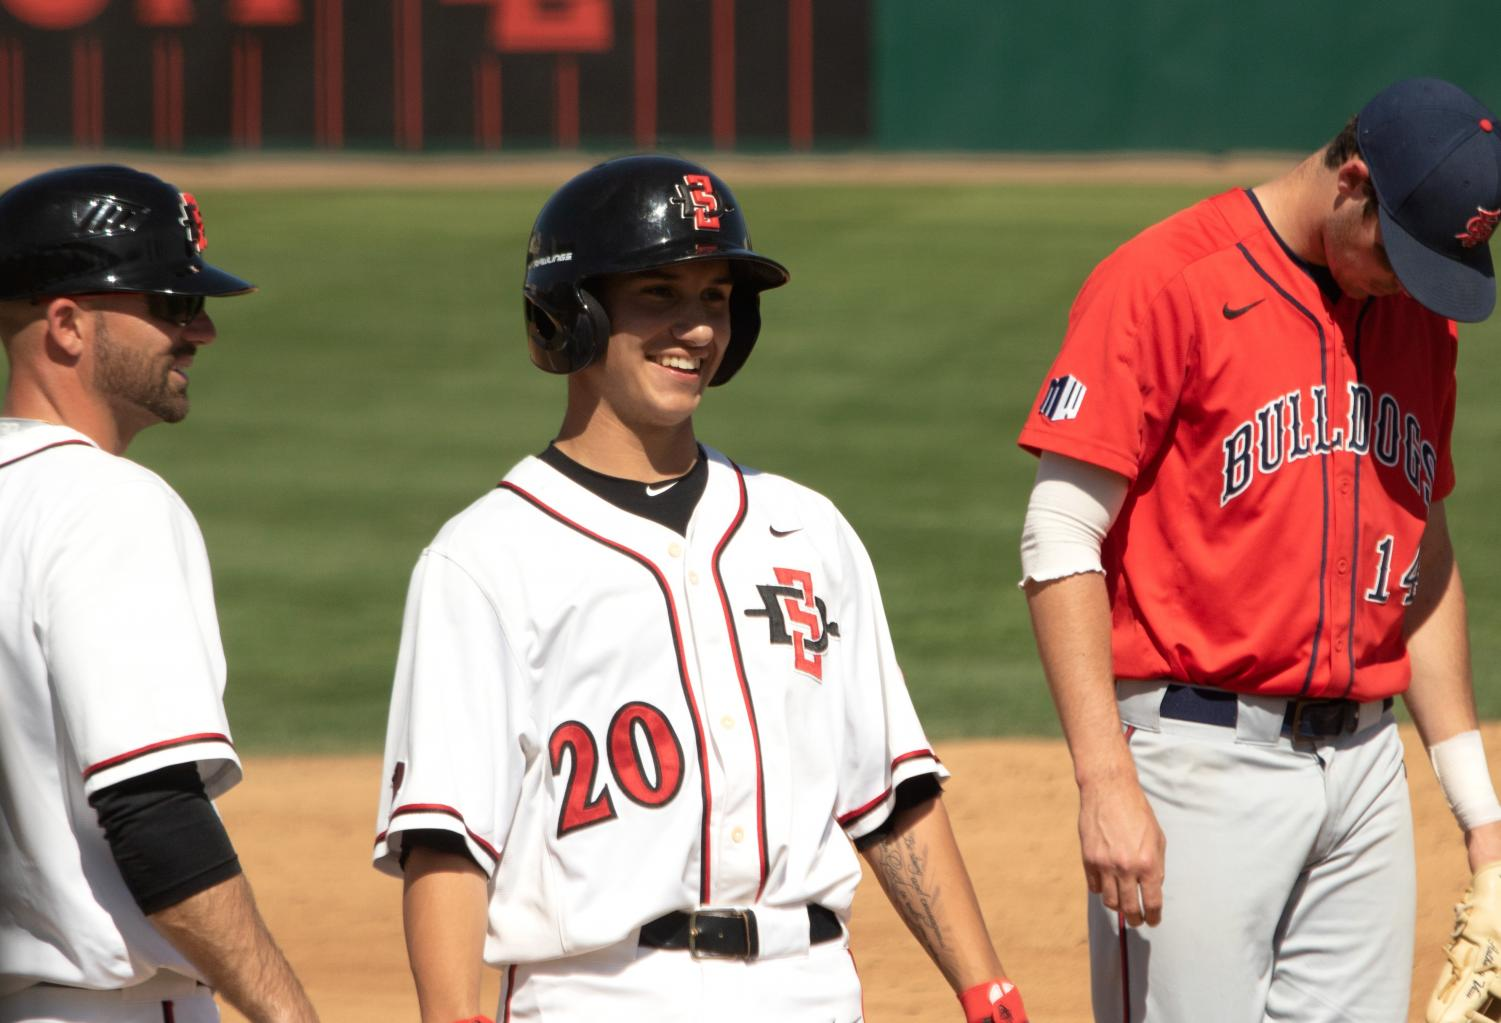 Freshman infielder Michael Paredes smiles during the Aztecs 11-6 victory over Fresno State on March 31 at Tony Gwynn Stadium.